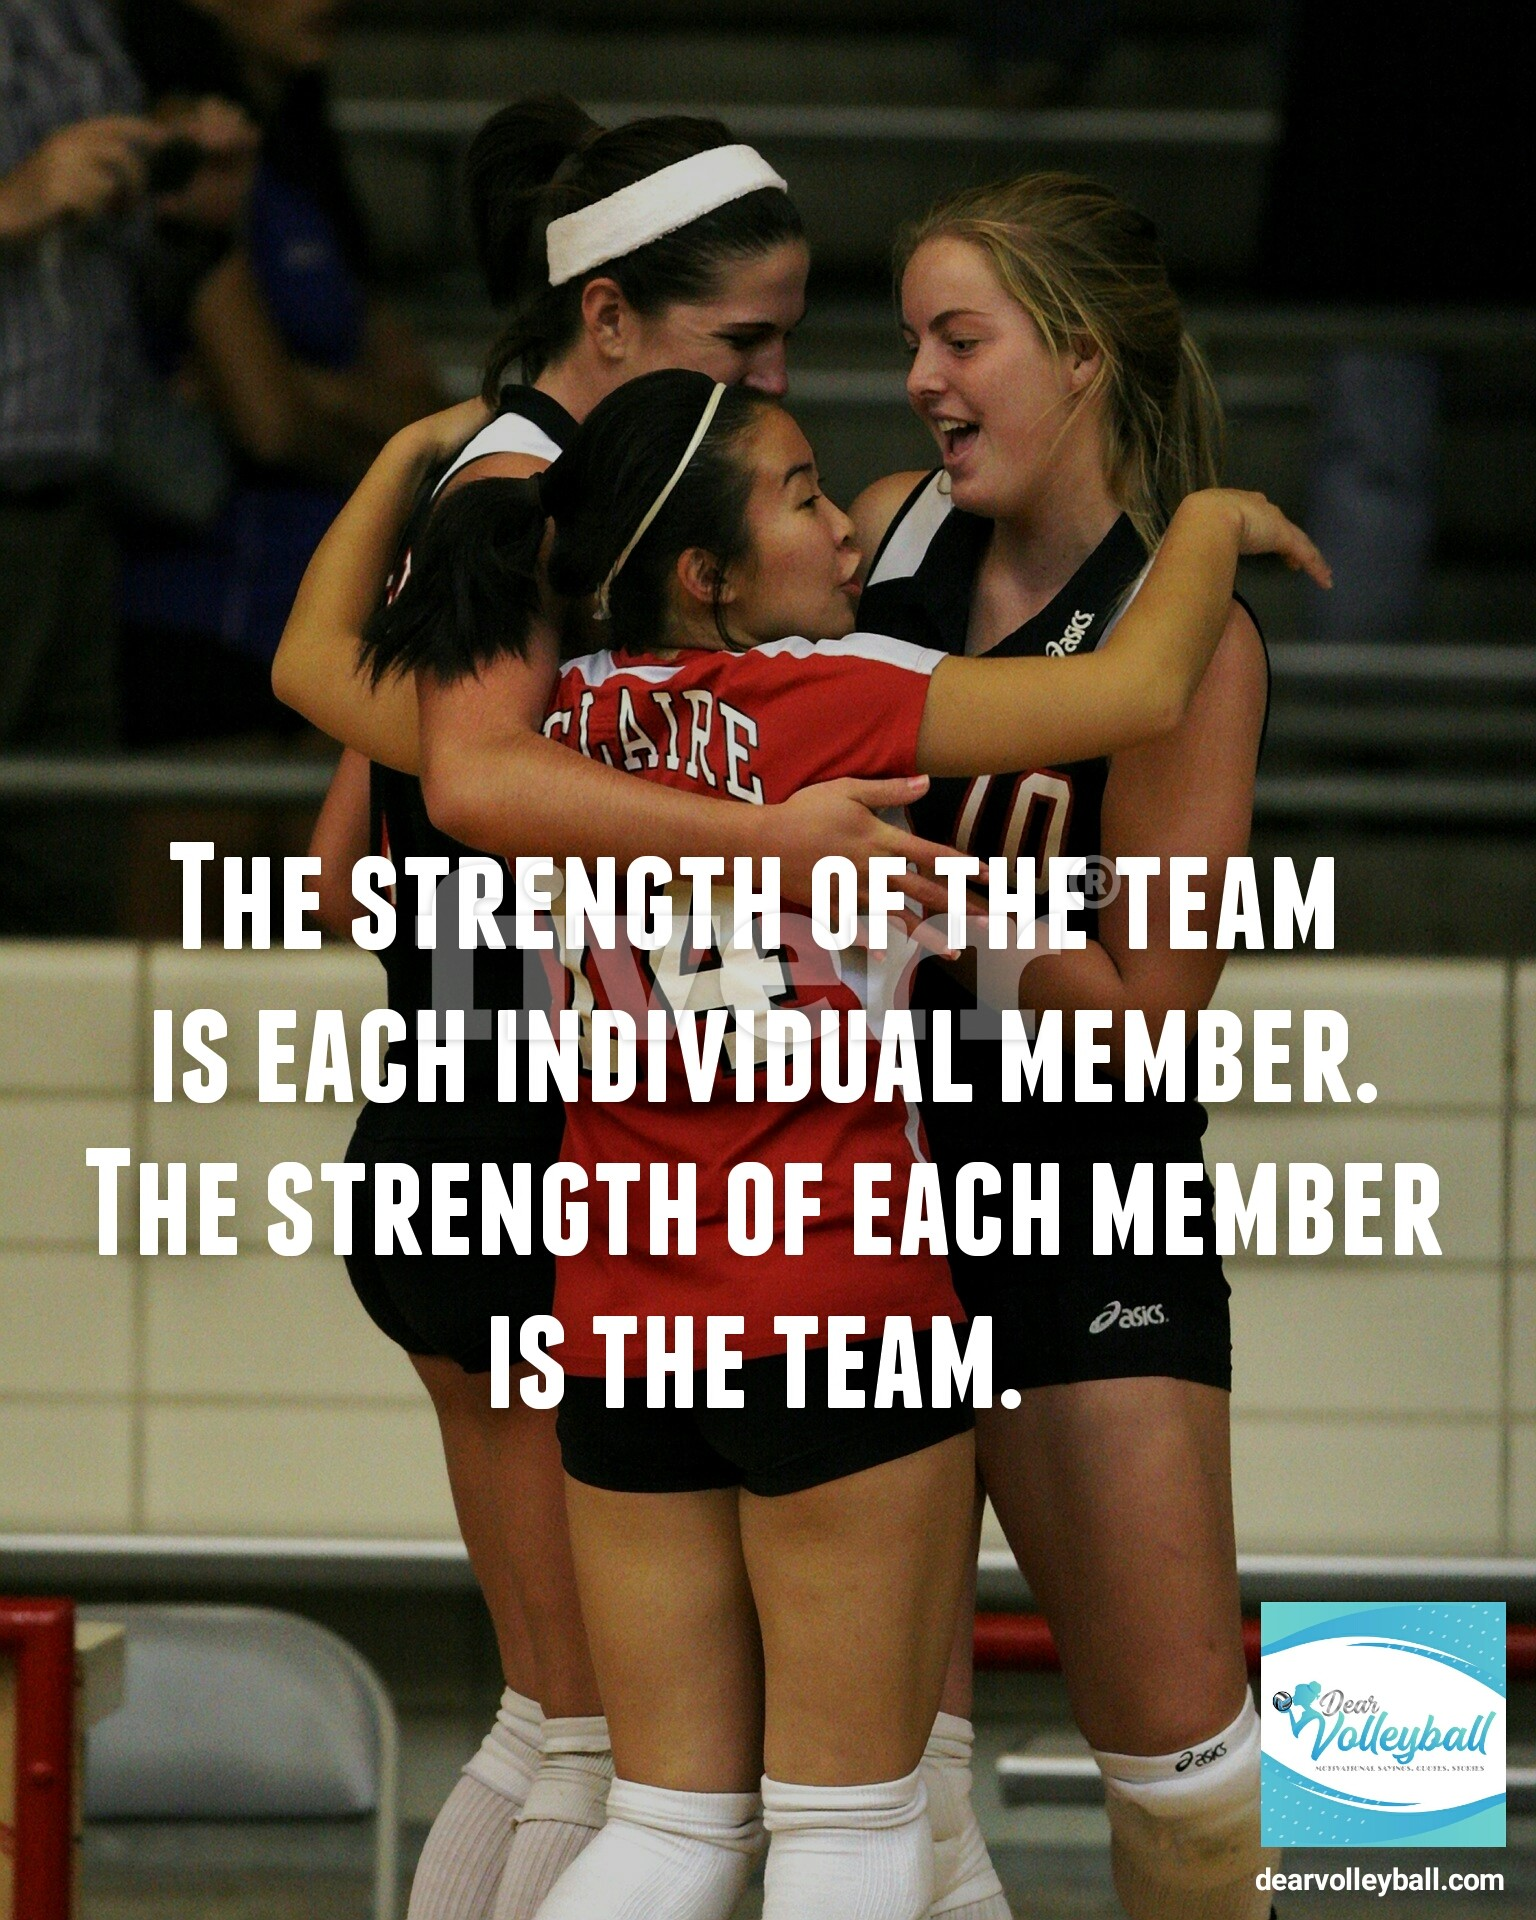 The strength of the team is each individual member. The strength of each member is the team and other volleyball coach quotes on DearVolleyball.com.